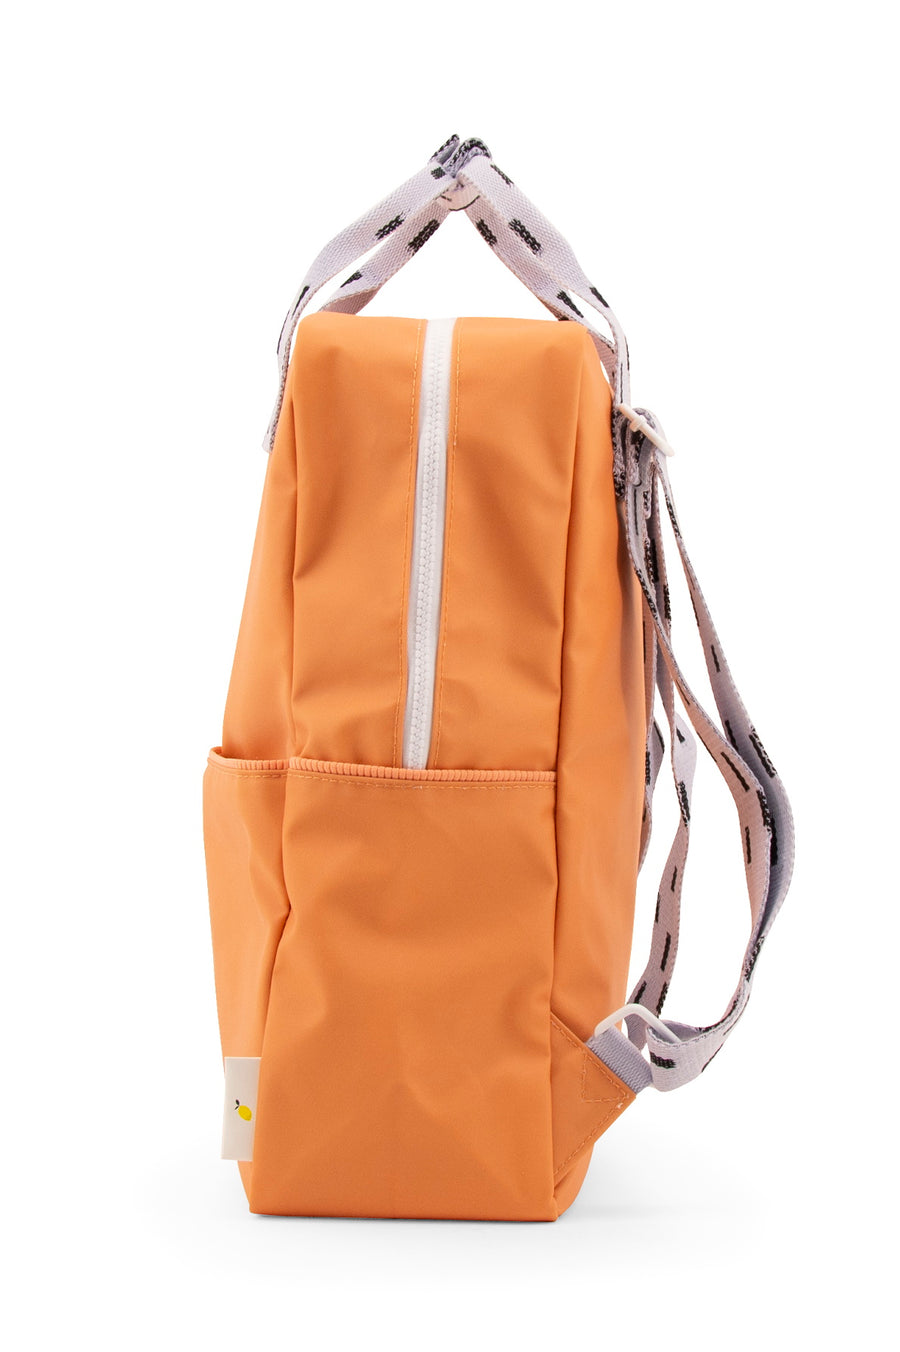 Sticky Lemon Sprinkles Collection Large Backpack, Apricot Orange/Lavender/Lemonade Pink